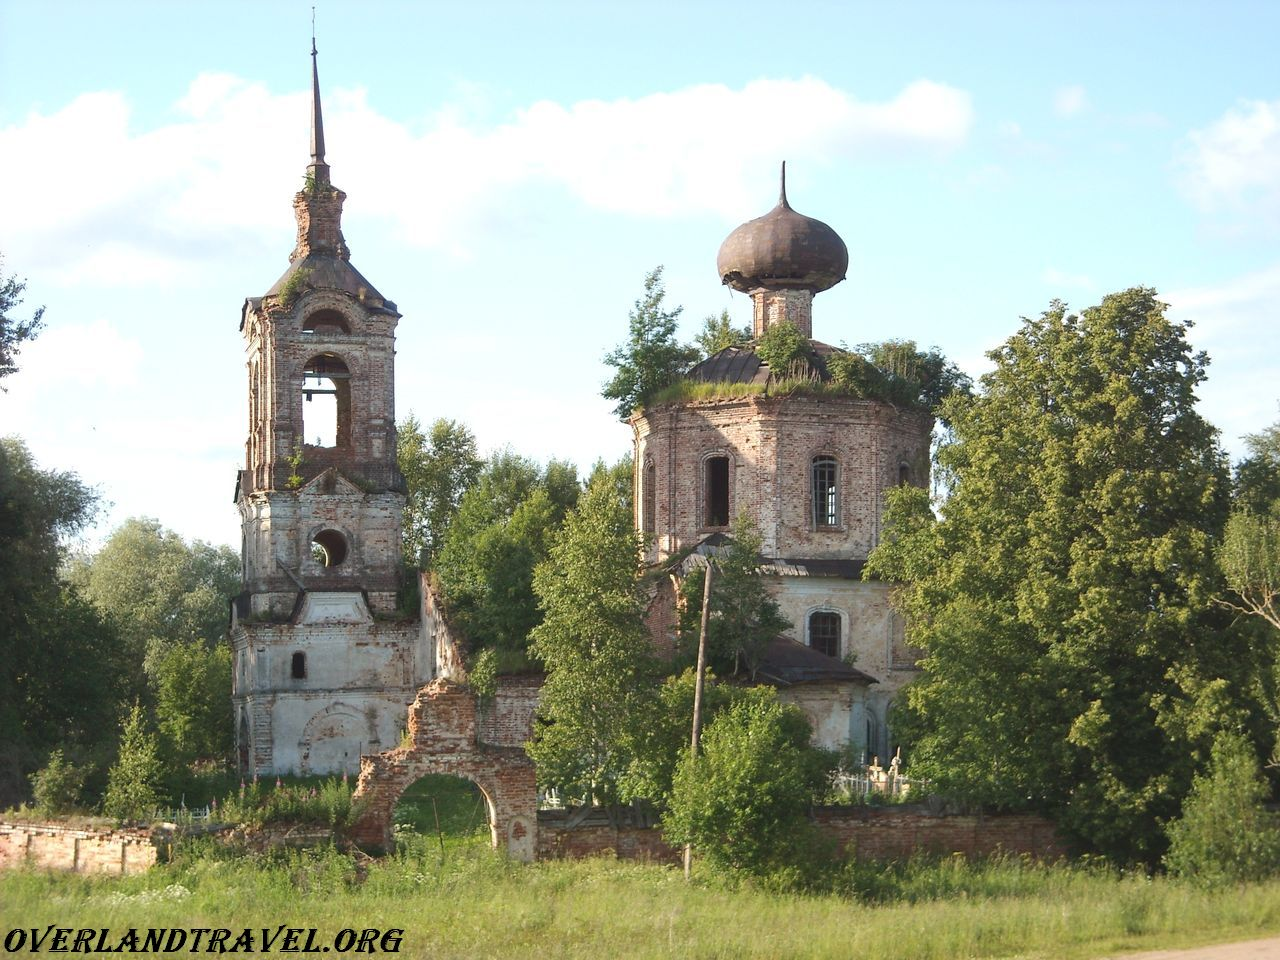 Church of the Dormition of the village of Shchuchye Ostashkov district of Tver region.